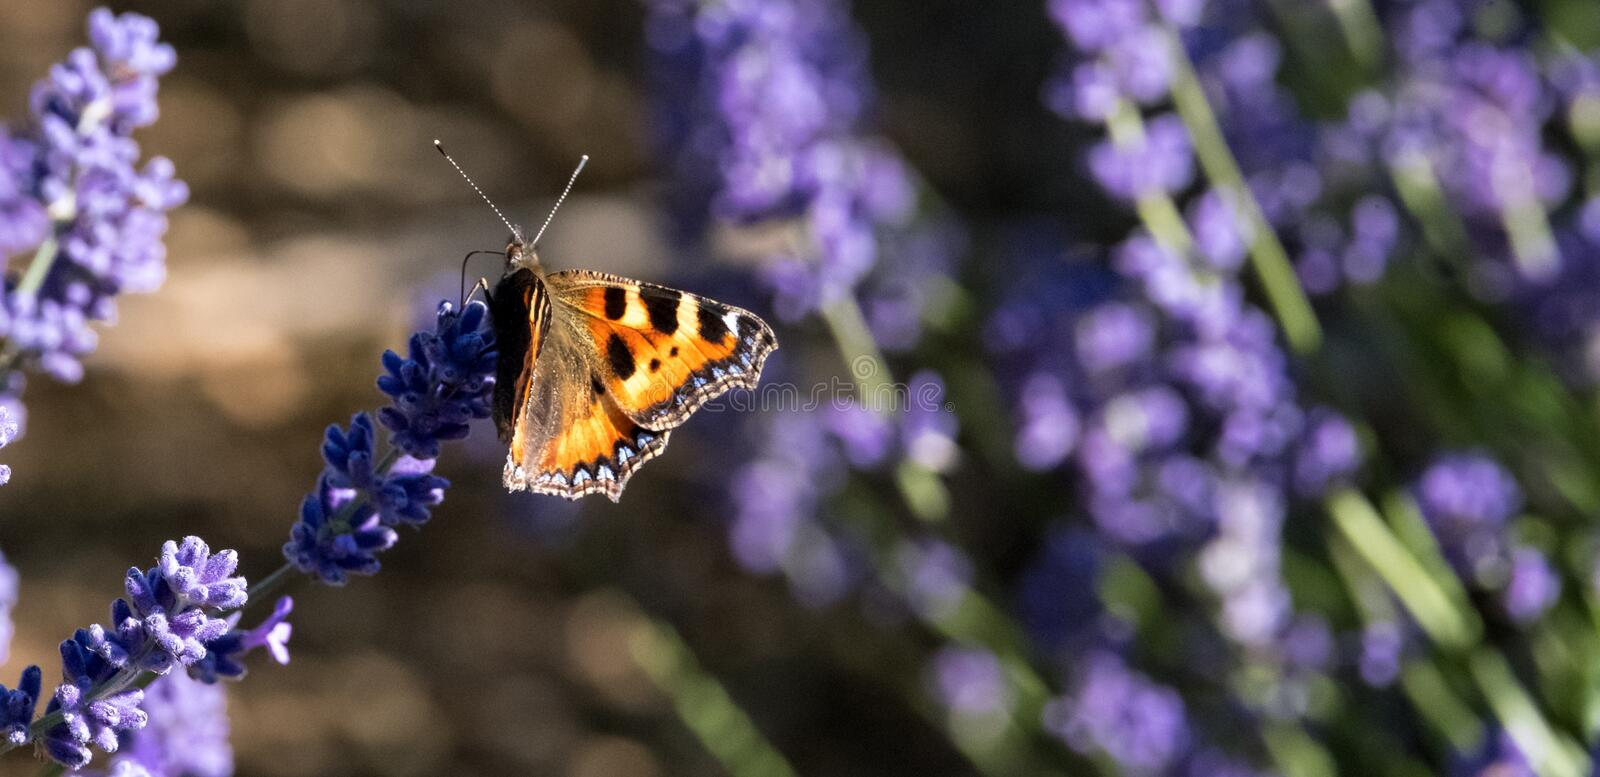 Red admiral butterfly lands on the flower head at lavender farm in the Cotswolds UK. Close up view of lavender growing on a flower farm in the Cotswolds, in royalty free stock photography